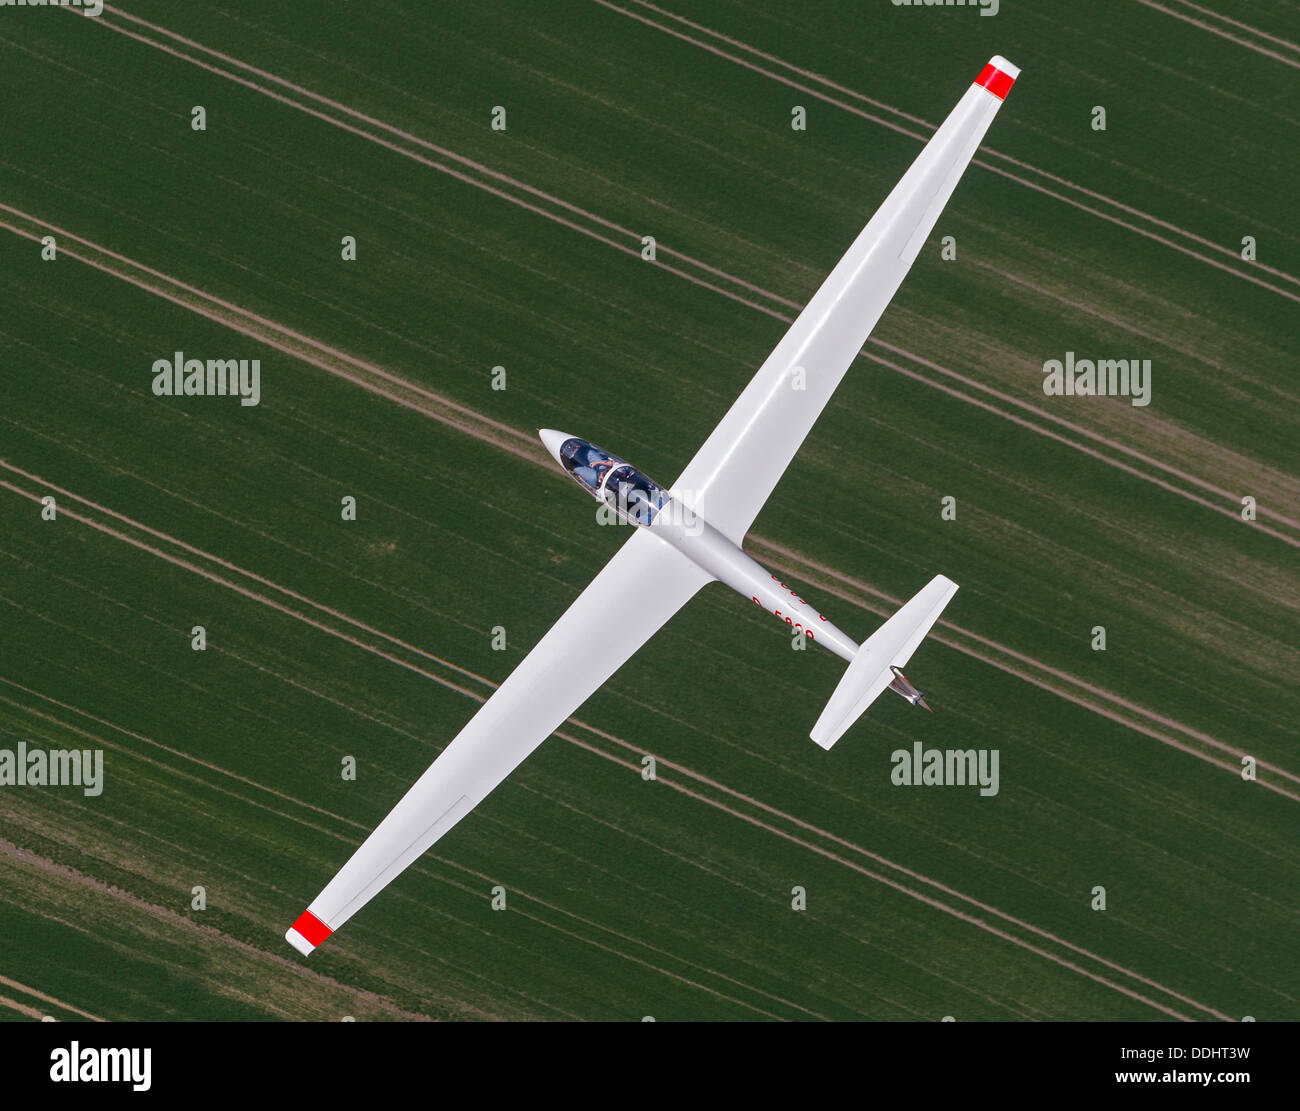 ASK 21 training glider, aerial view - Stock Image